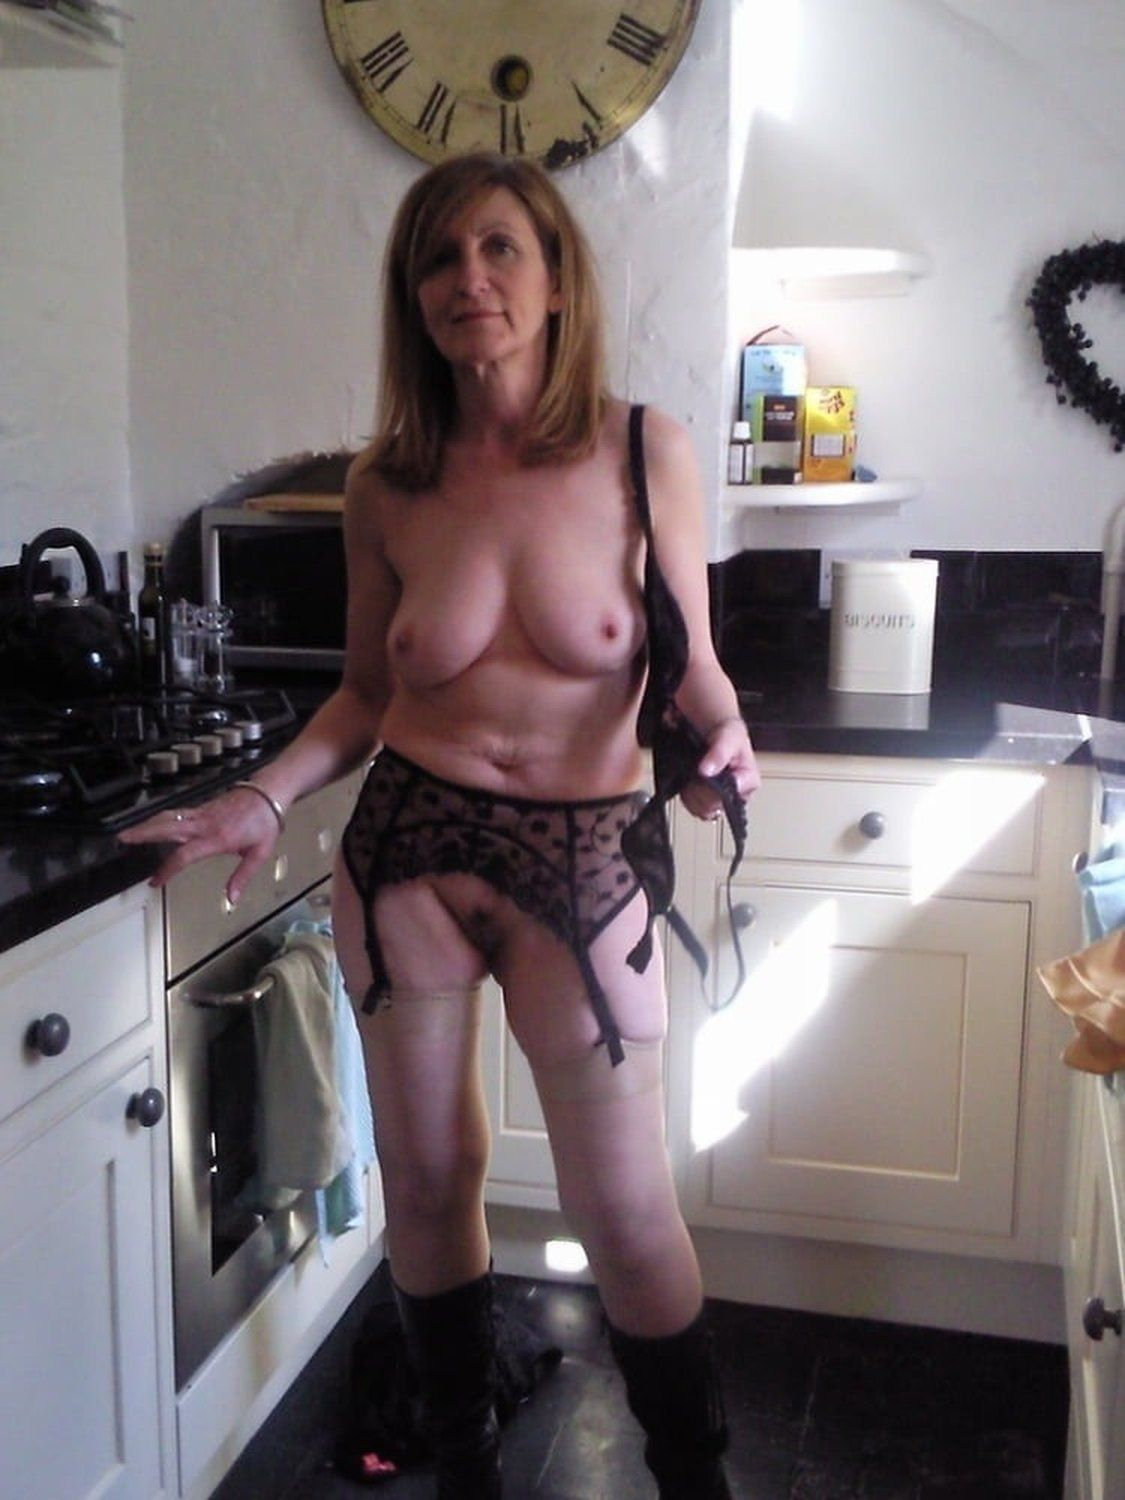 Seriously hot milf stripping off her lingerie and posing naked. Graceful amateur wife exposing natural tits and hairy pussy